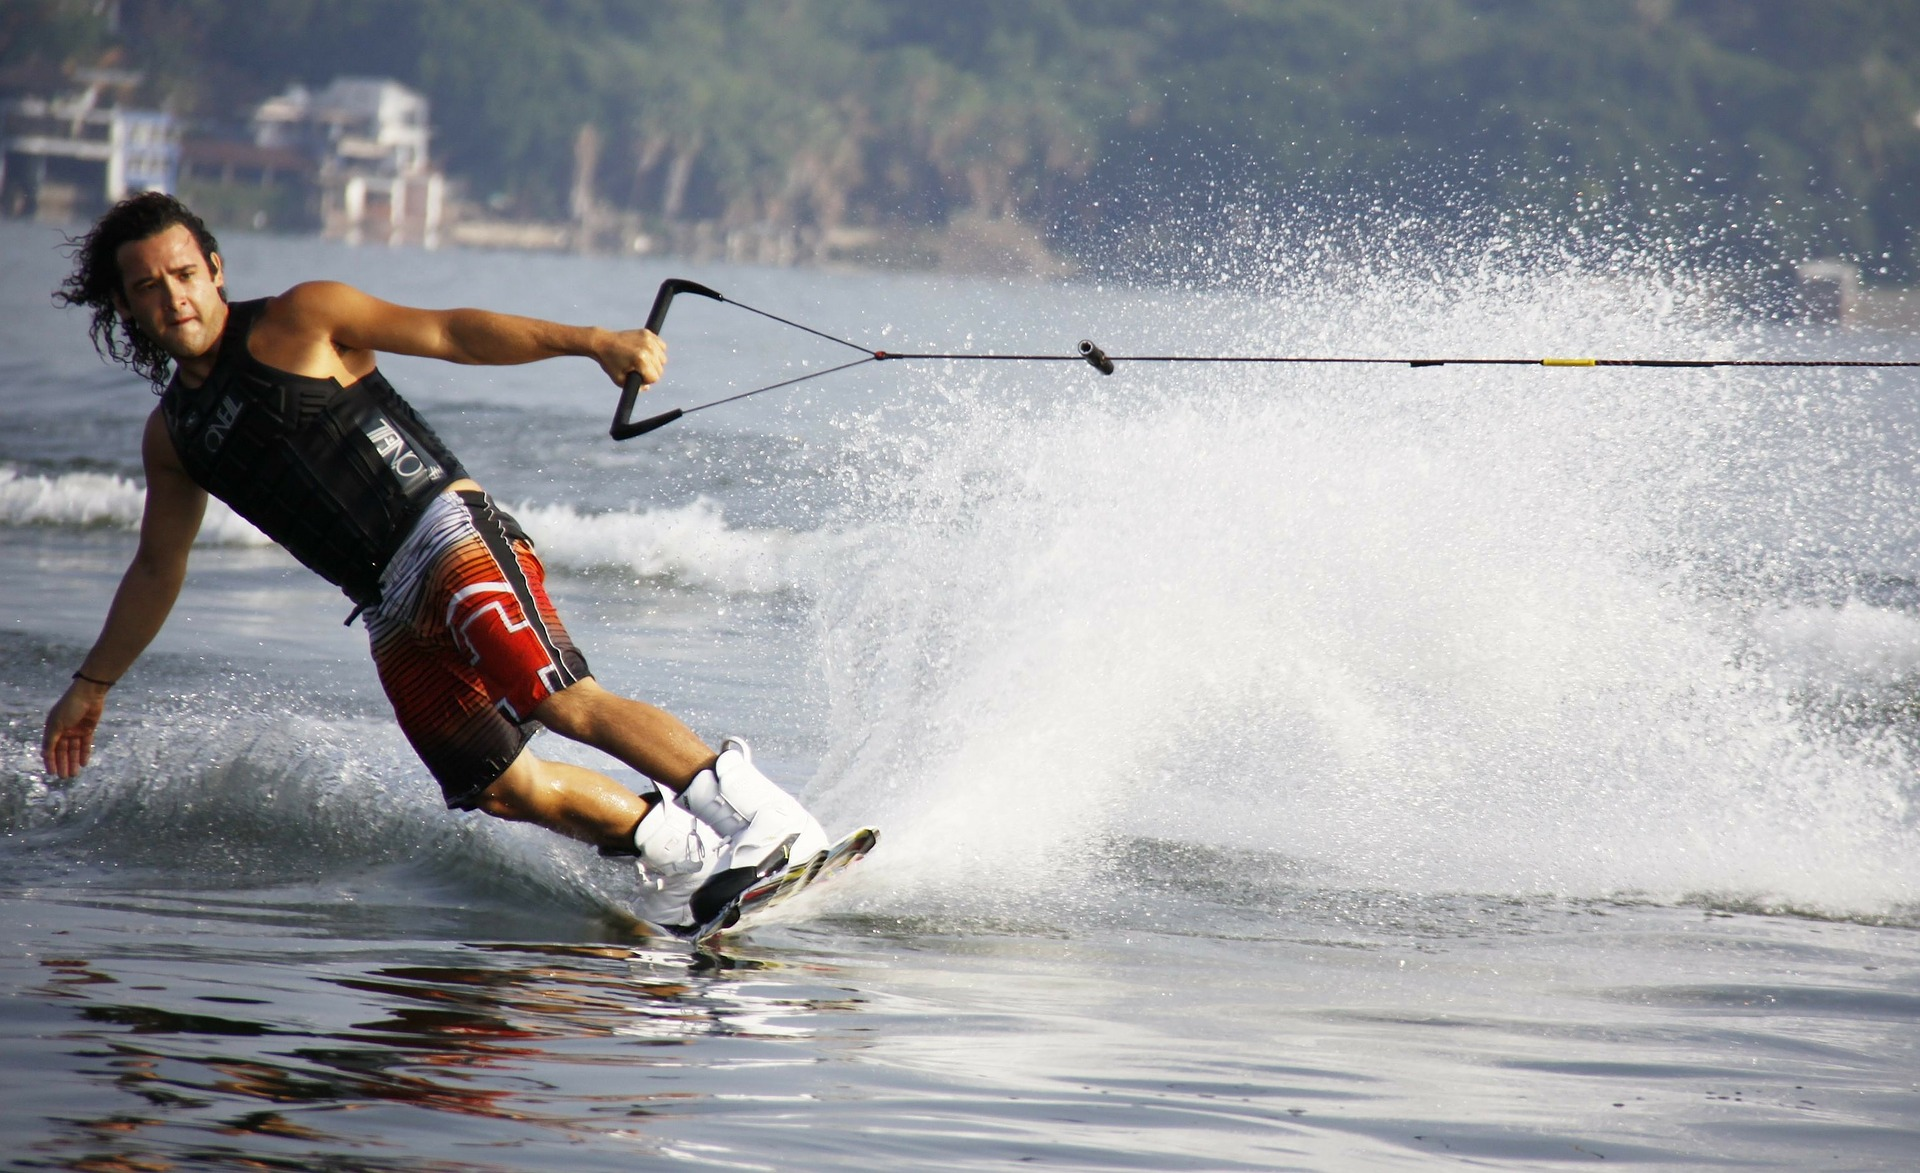 man wakeboarding over the waves of water